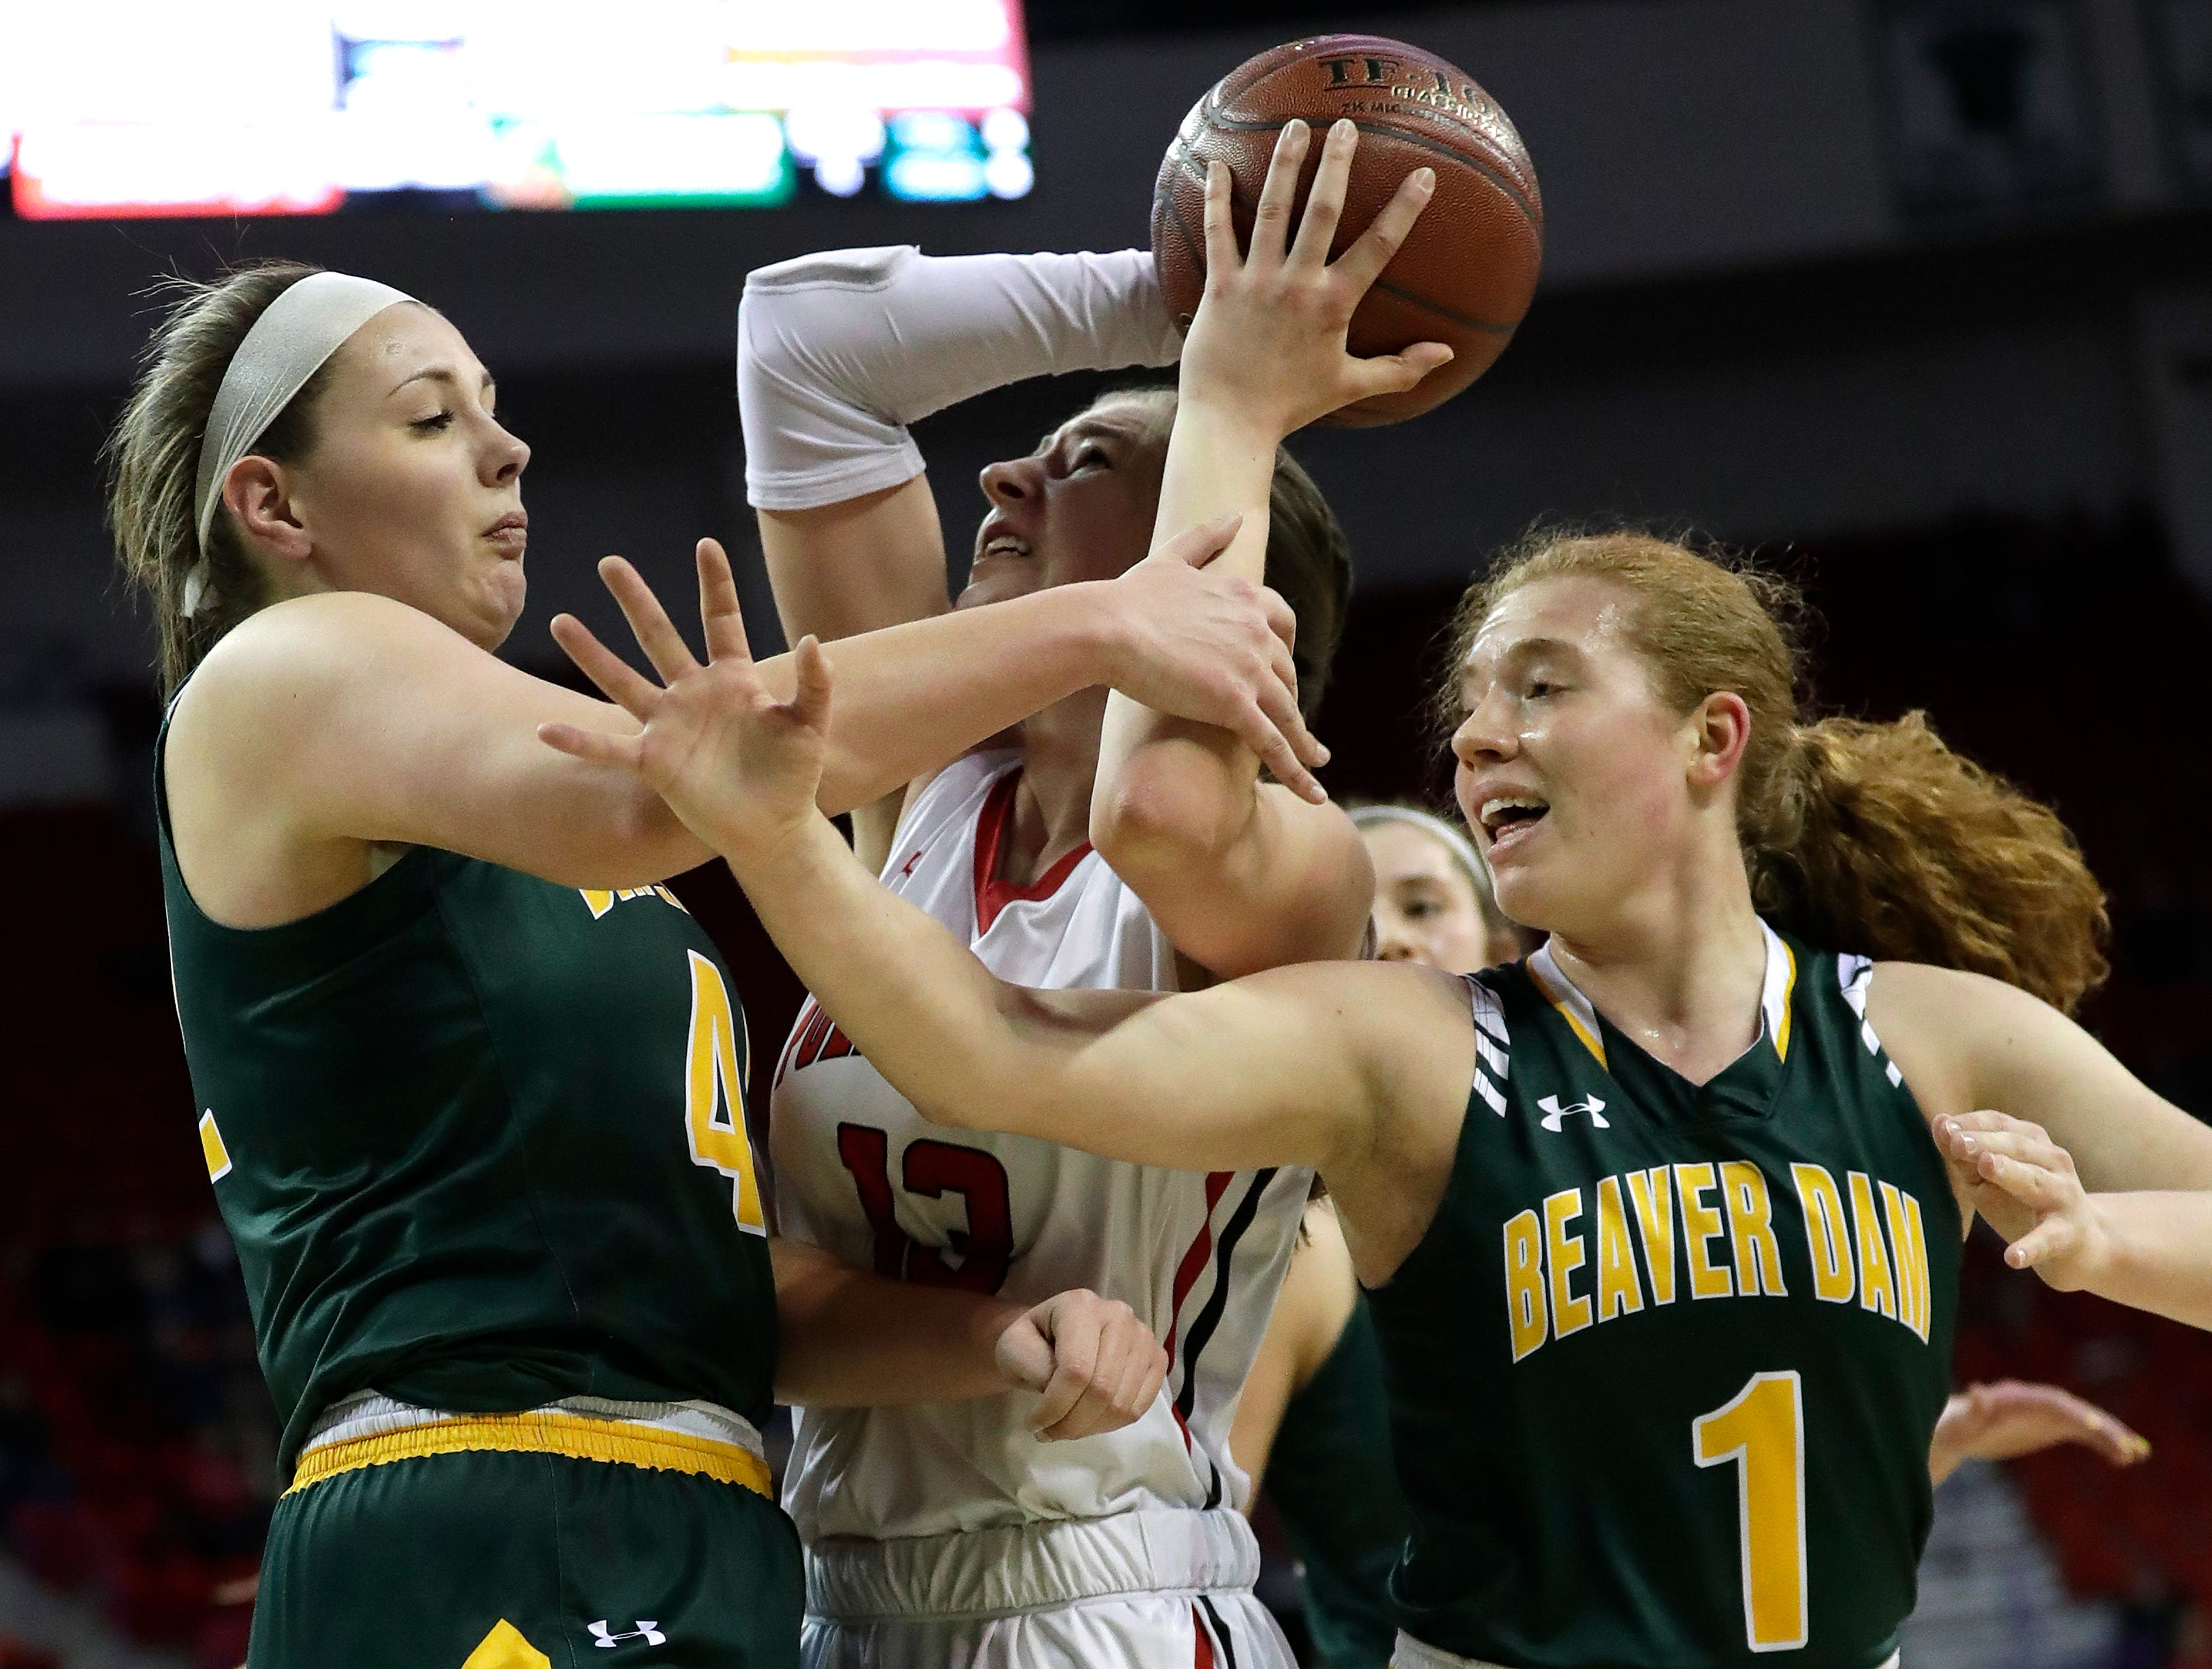 Hortonville's Macy McGlone (13) is fouled as she tries to put up a shot against Beaver Dam's Aly Van Loo (42) and Natalie Jens (1) during their Division 2 semifinal game at the WIAA girls state basketball tournament Friday, March 8, 2019, at the Resch Center in Ashwaubenon, Wis. Dan Powers/USA TODAY NETWORK-Wisconsin